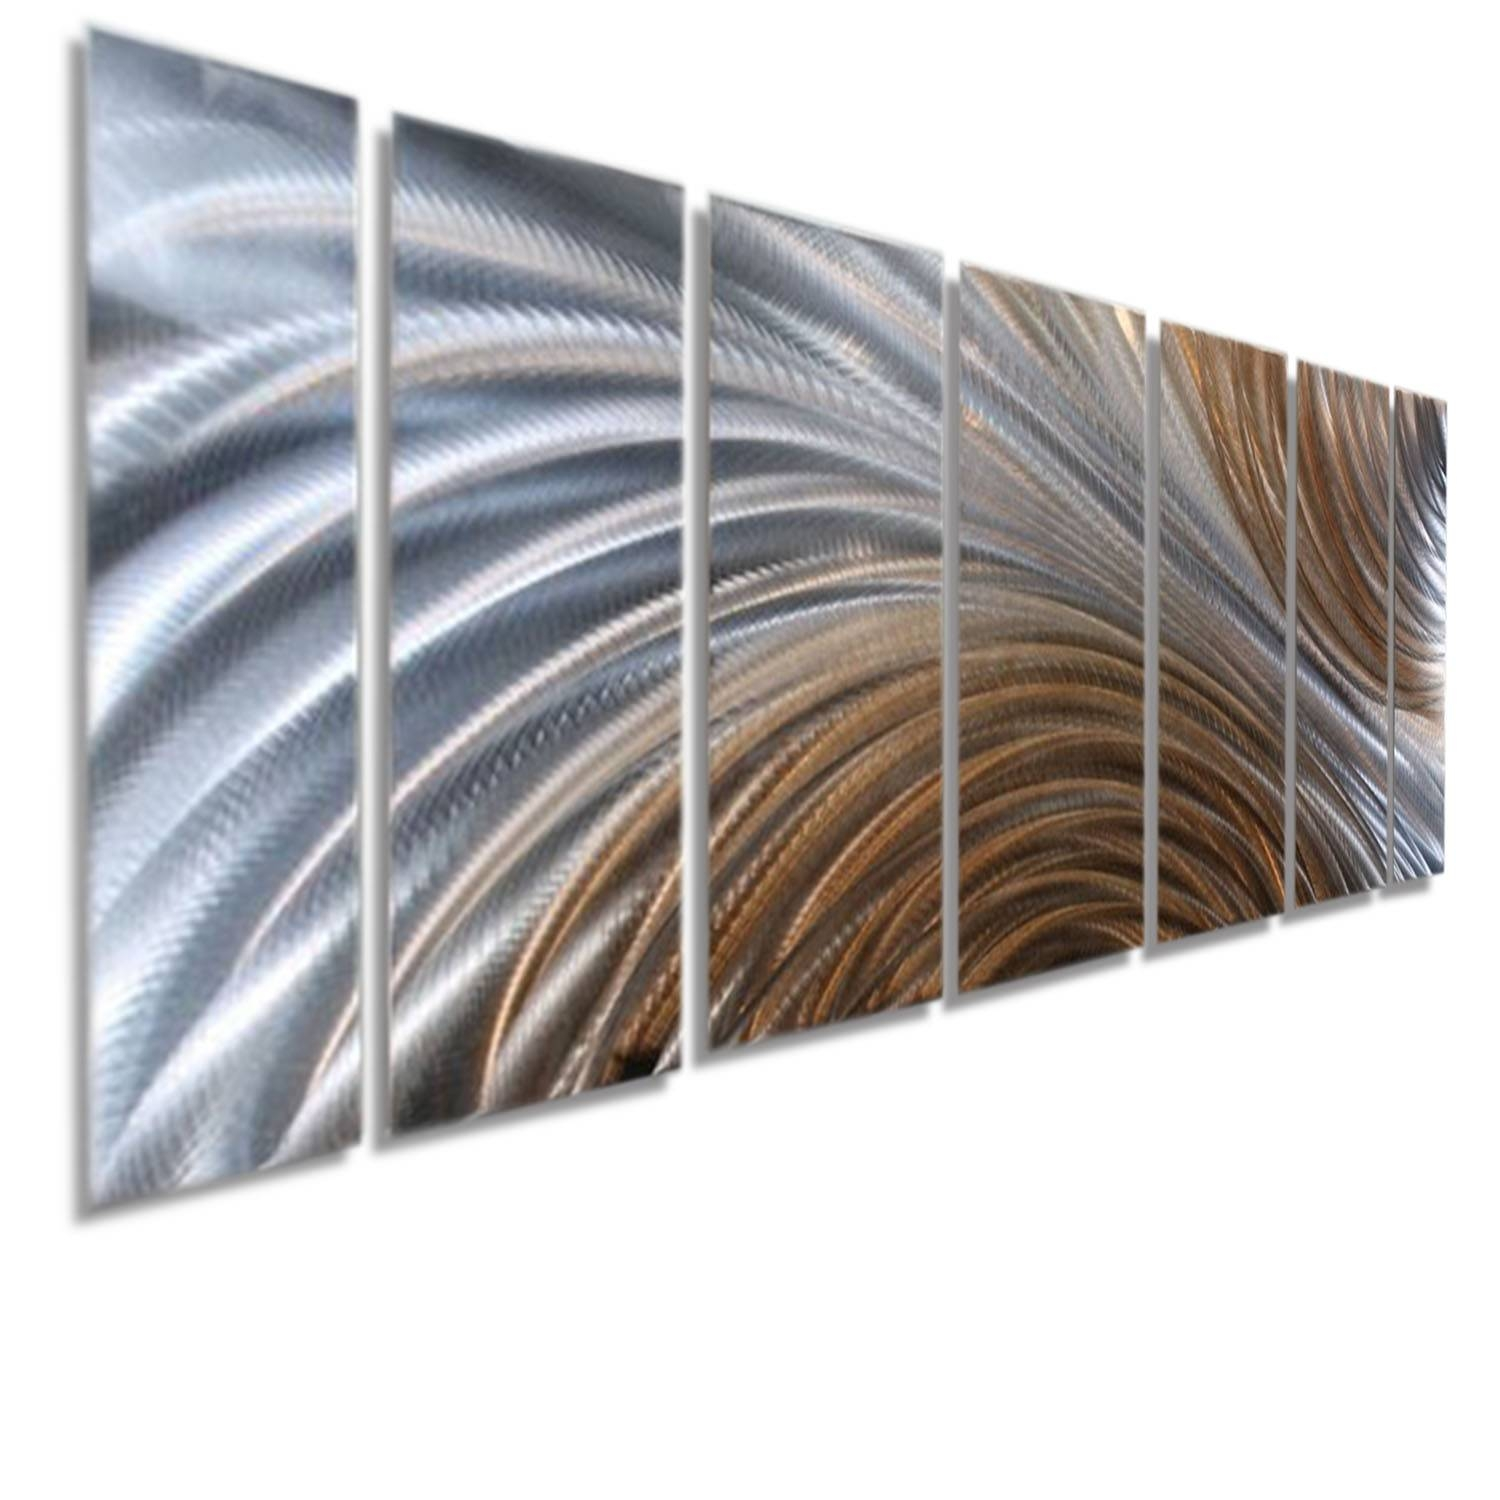 Amber Ascension  Silver & Copper Abstract Metal Wall Artjon Throughout Most Current Large Abstract Metal Wall Art (View 4 of 20)